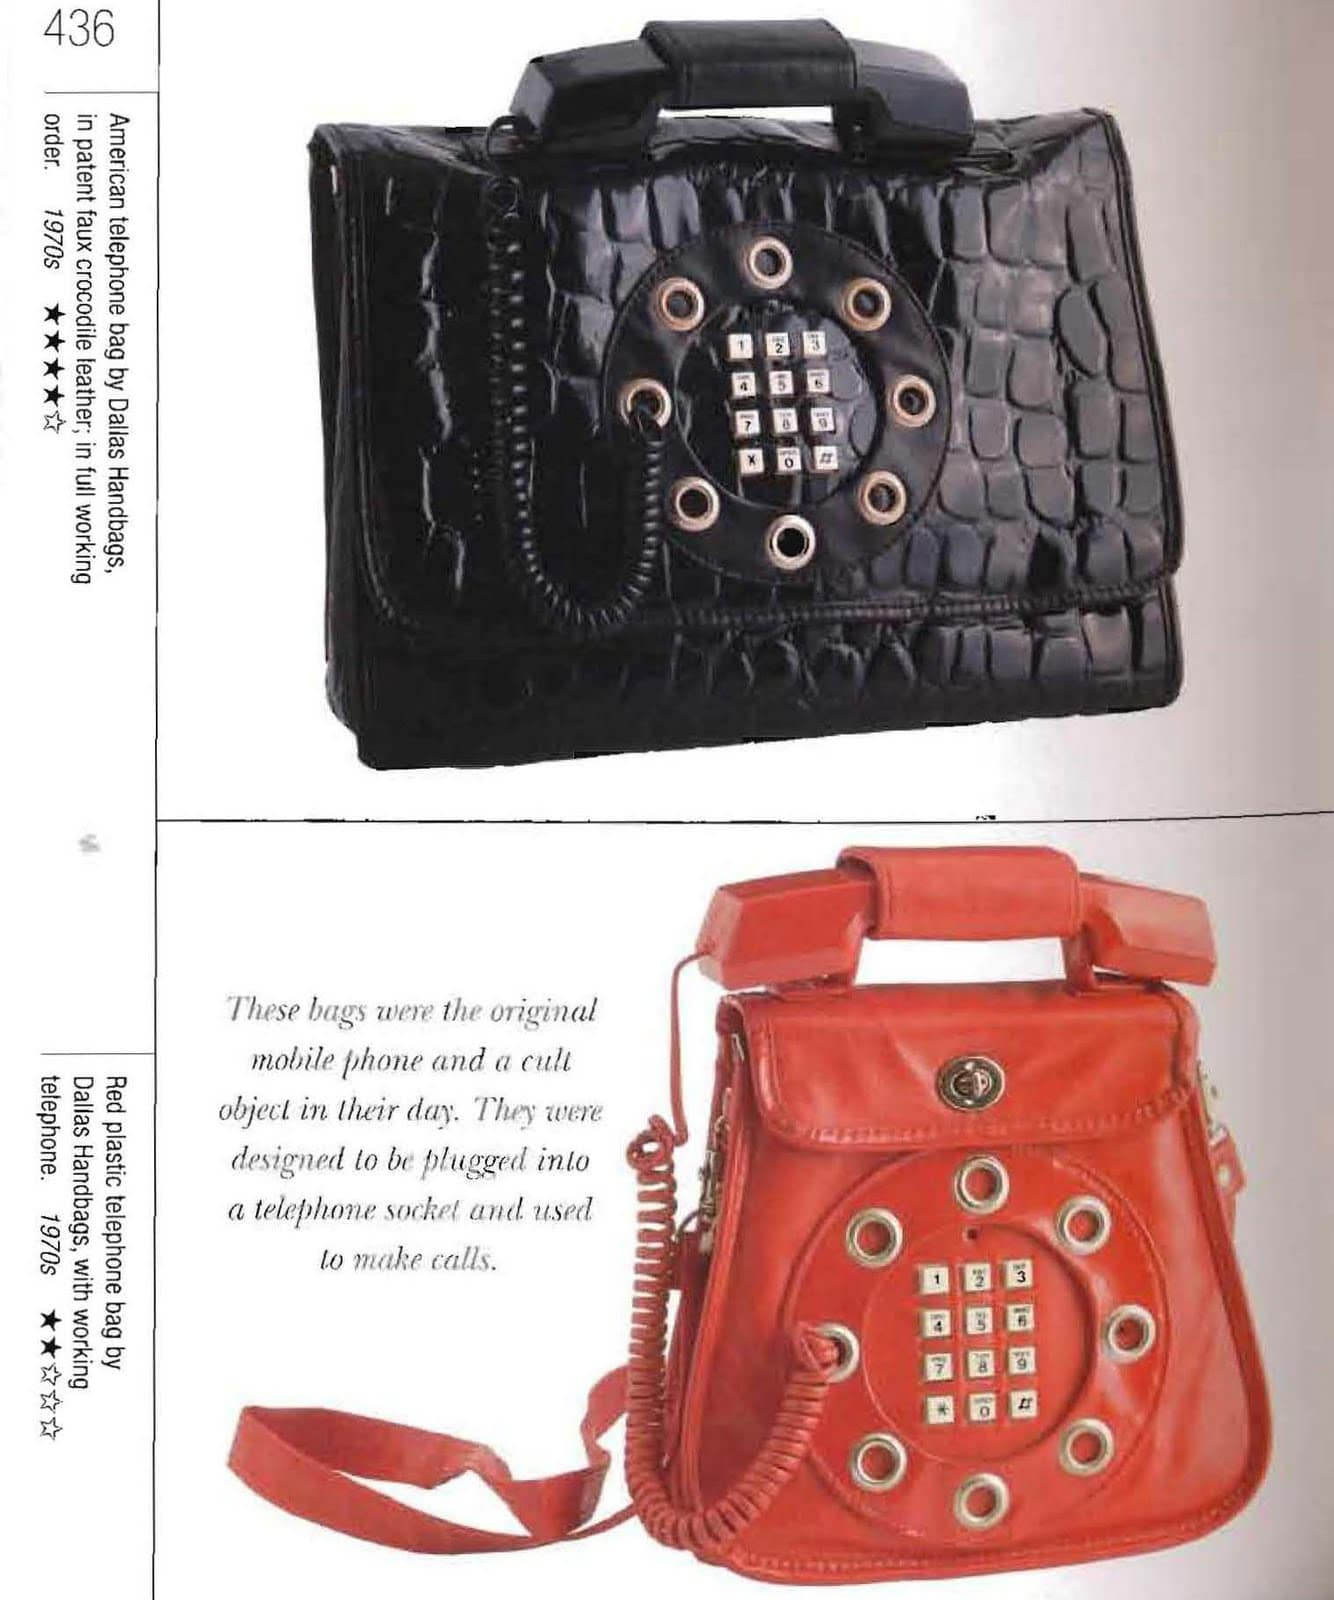 Telephone Bag: Quite Possibly The First Mobile Phone Ever